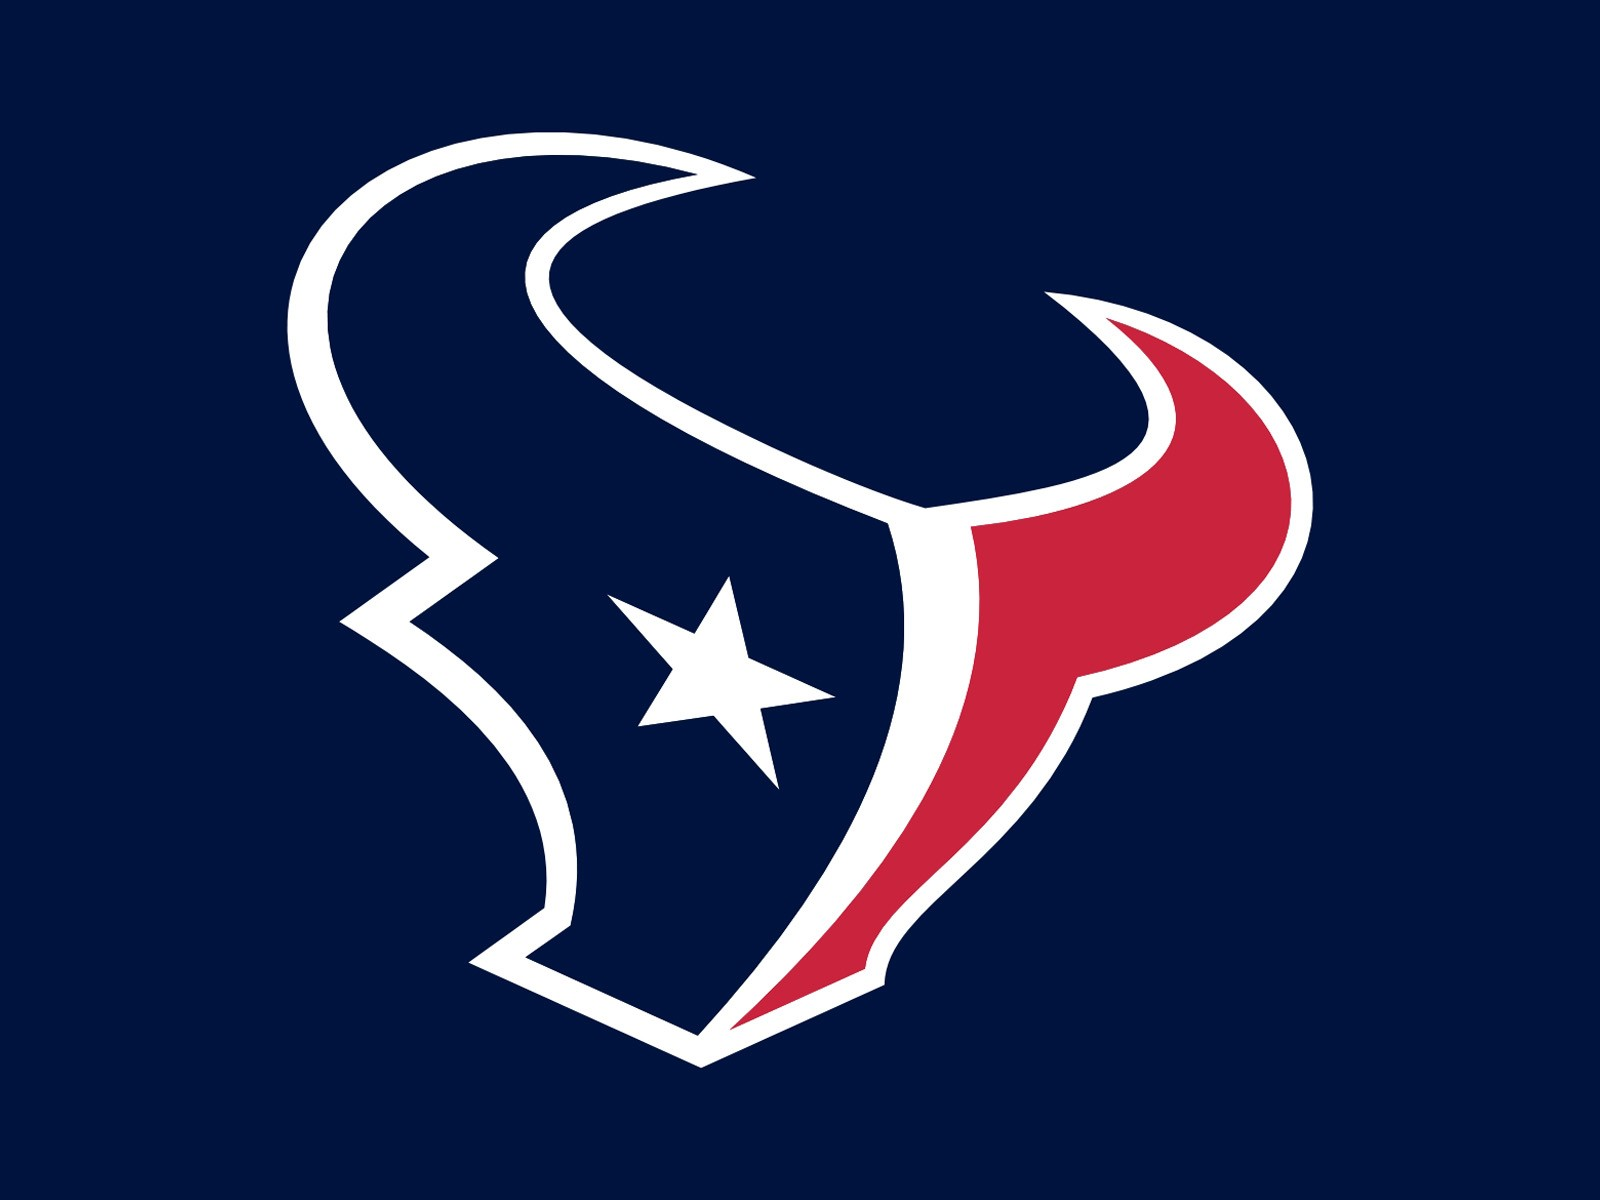 Houston Texans Team Logo Blue 1600x1200 STANDARD Image Sports NFL 1600x1200